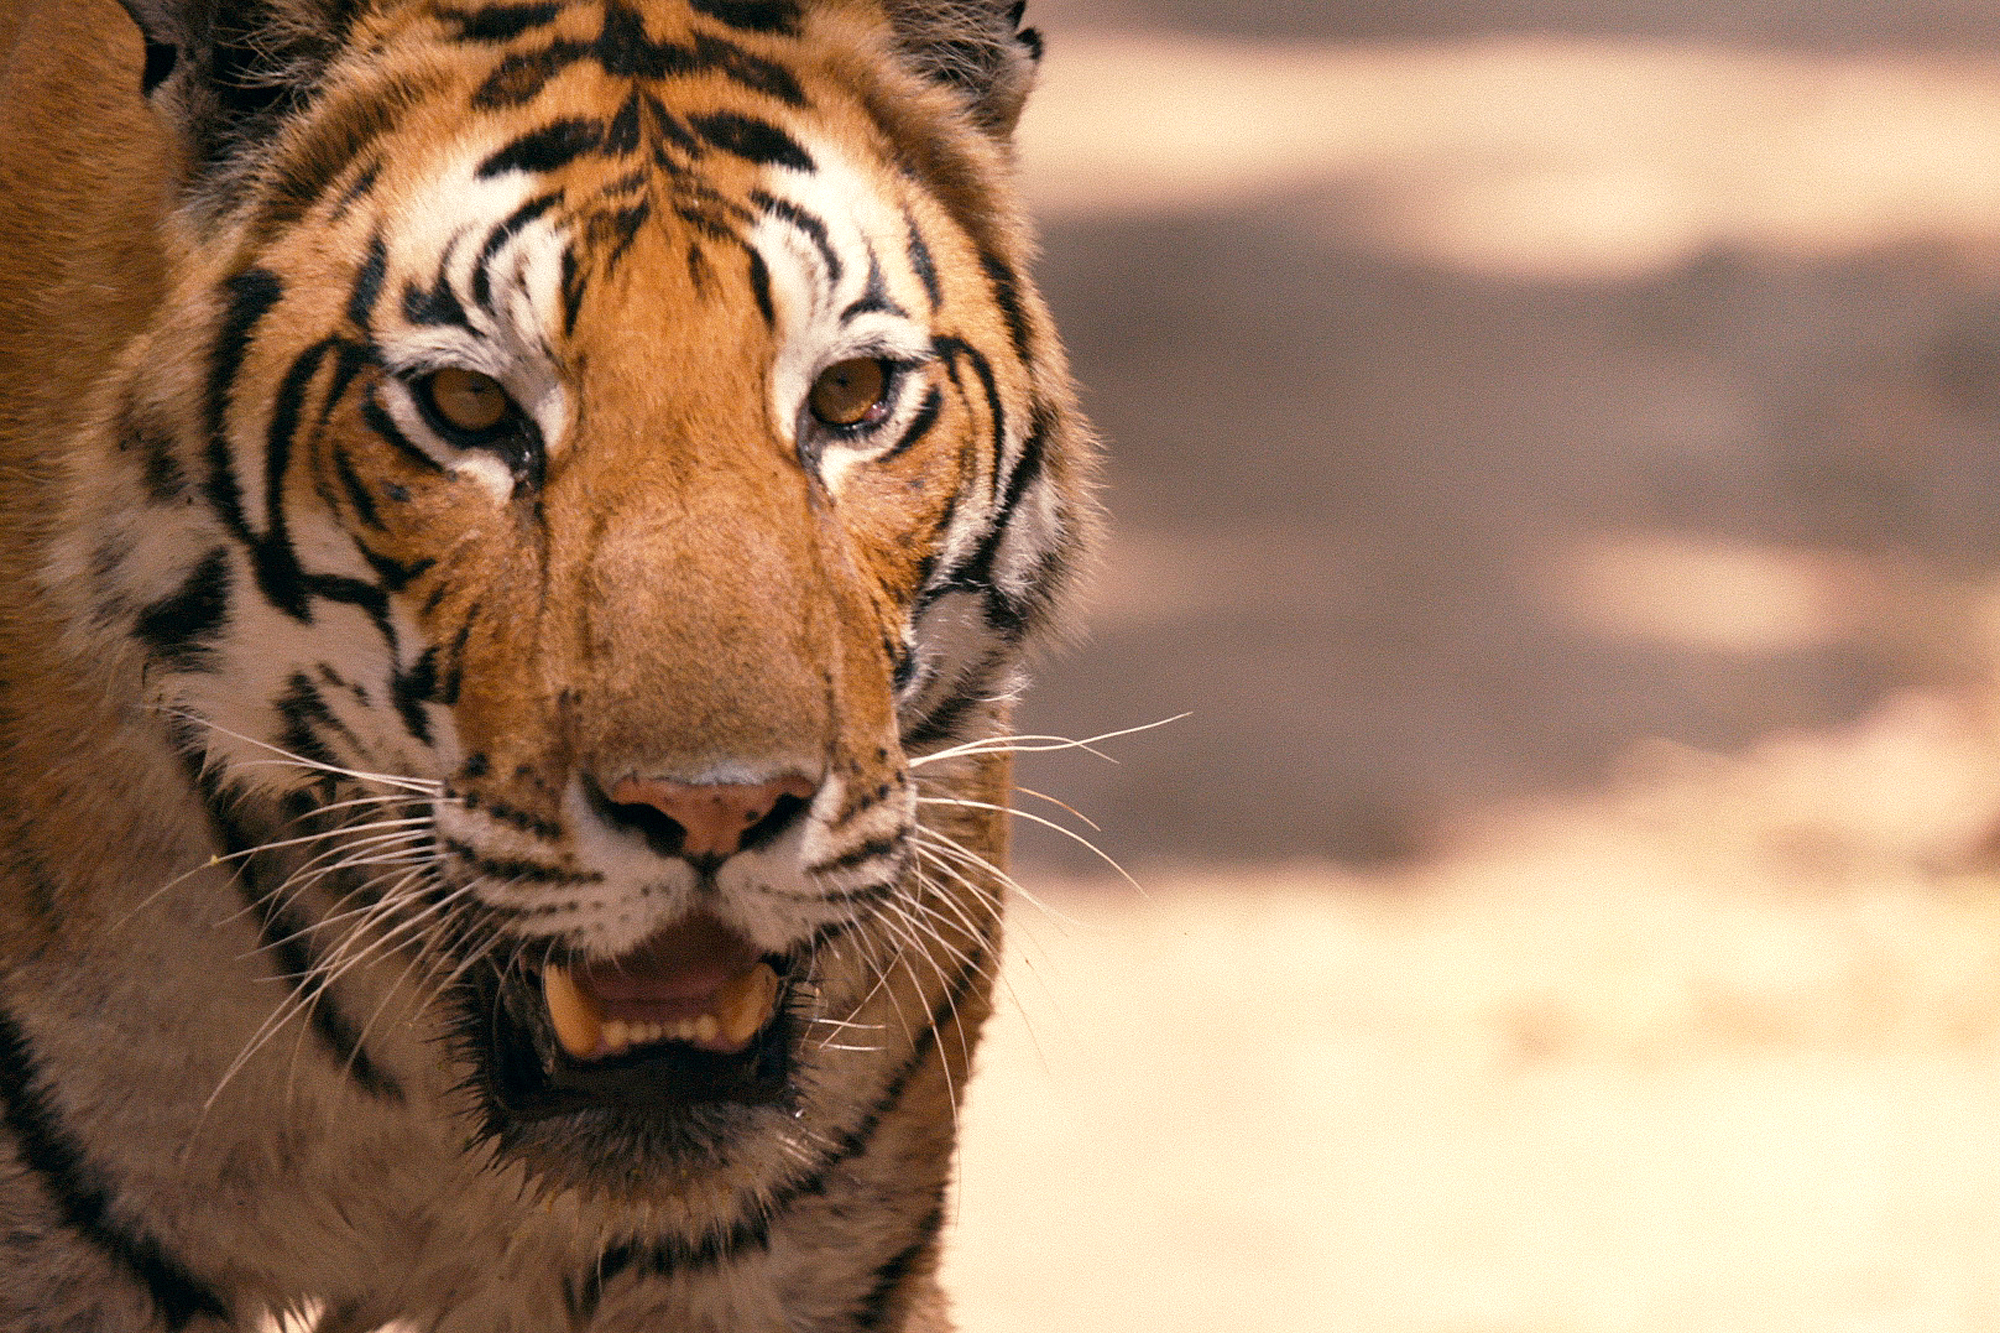 Endangered TigersCredit: Discovery